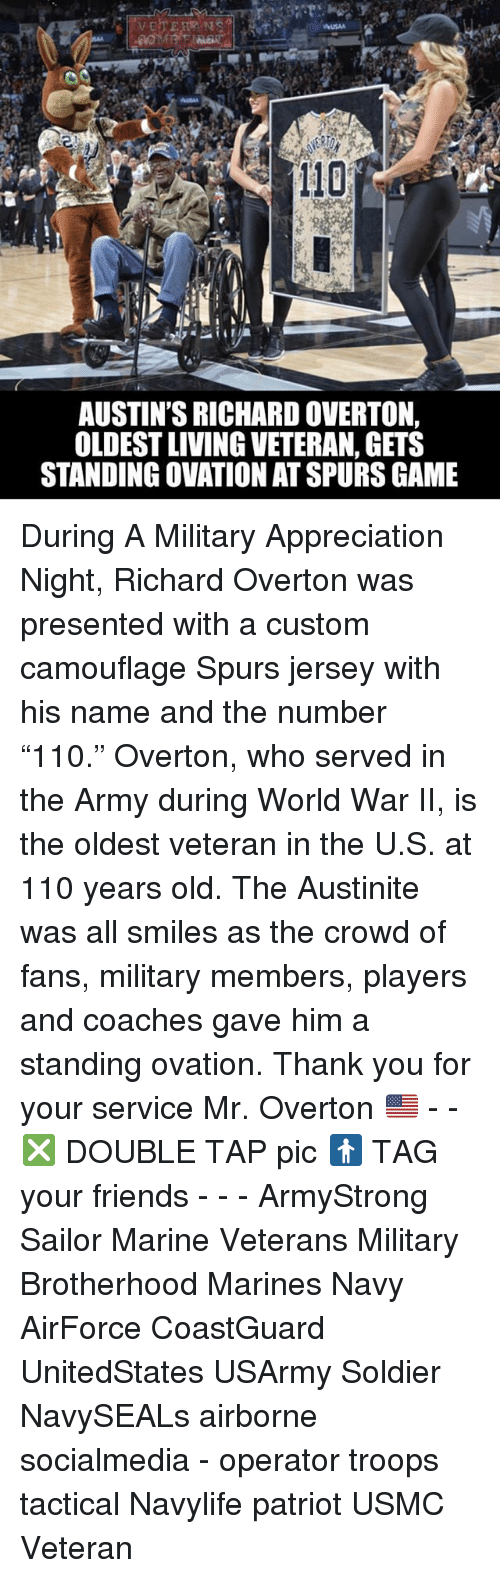 "Andrew Bogut, Friends, and Memes: AUSTIN'S RICHARD OVERTON,  OLDESTLIVING VETERAN, GETS  STANDING OVATION ATSPURS GAME During A Military Appreciation Night, Richard Overton was presented with a custom camouflage Spurs jersey with his name and the number ""110."" Overton, who served in the Army during World War II, is the oldest veteran in the U.S. at 110 years old. The Austinite was all smiles as the crowd of fans, military members, players and coaches gave him a standing ovation. Thank you for your service Mr. Overton 🇺🇸 - - ❎ DOUBLE TAP pic 🚹 TAG your friends - - - ArmyStrong Sailor Marine Veterans Military Brotherhood Marines Navy AirForce CoastGuard UnitedStates USArmy Soldier NavySEALs airborne socialmedia - operator troops tactical Navylife patriot USMC Veteran"